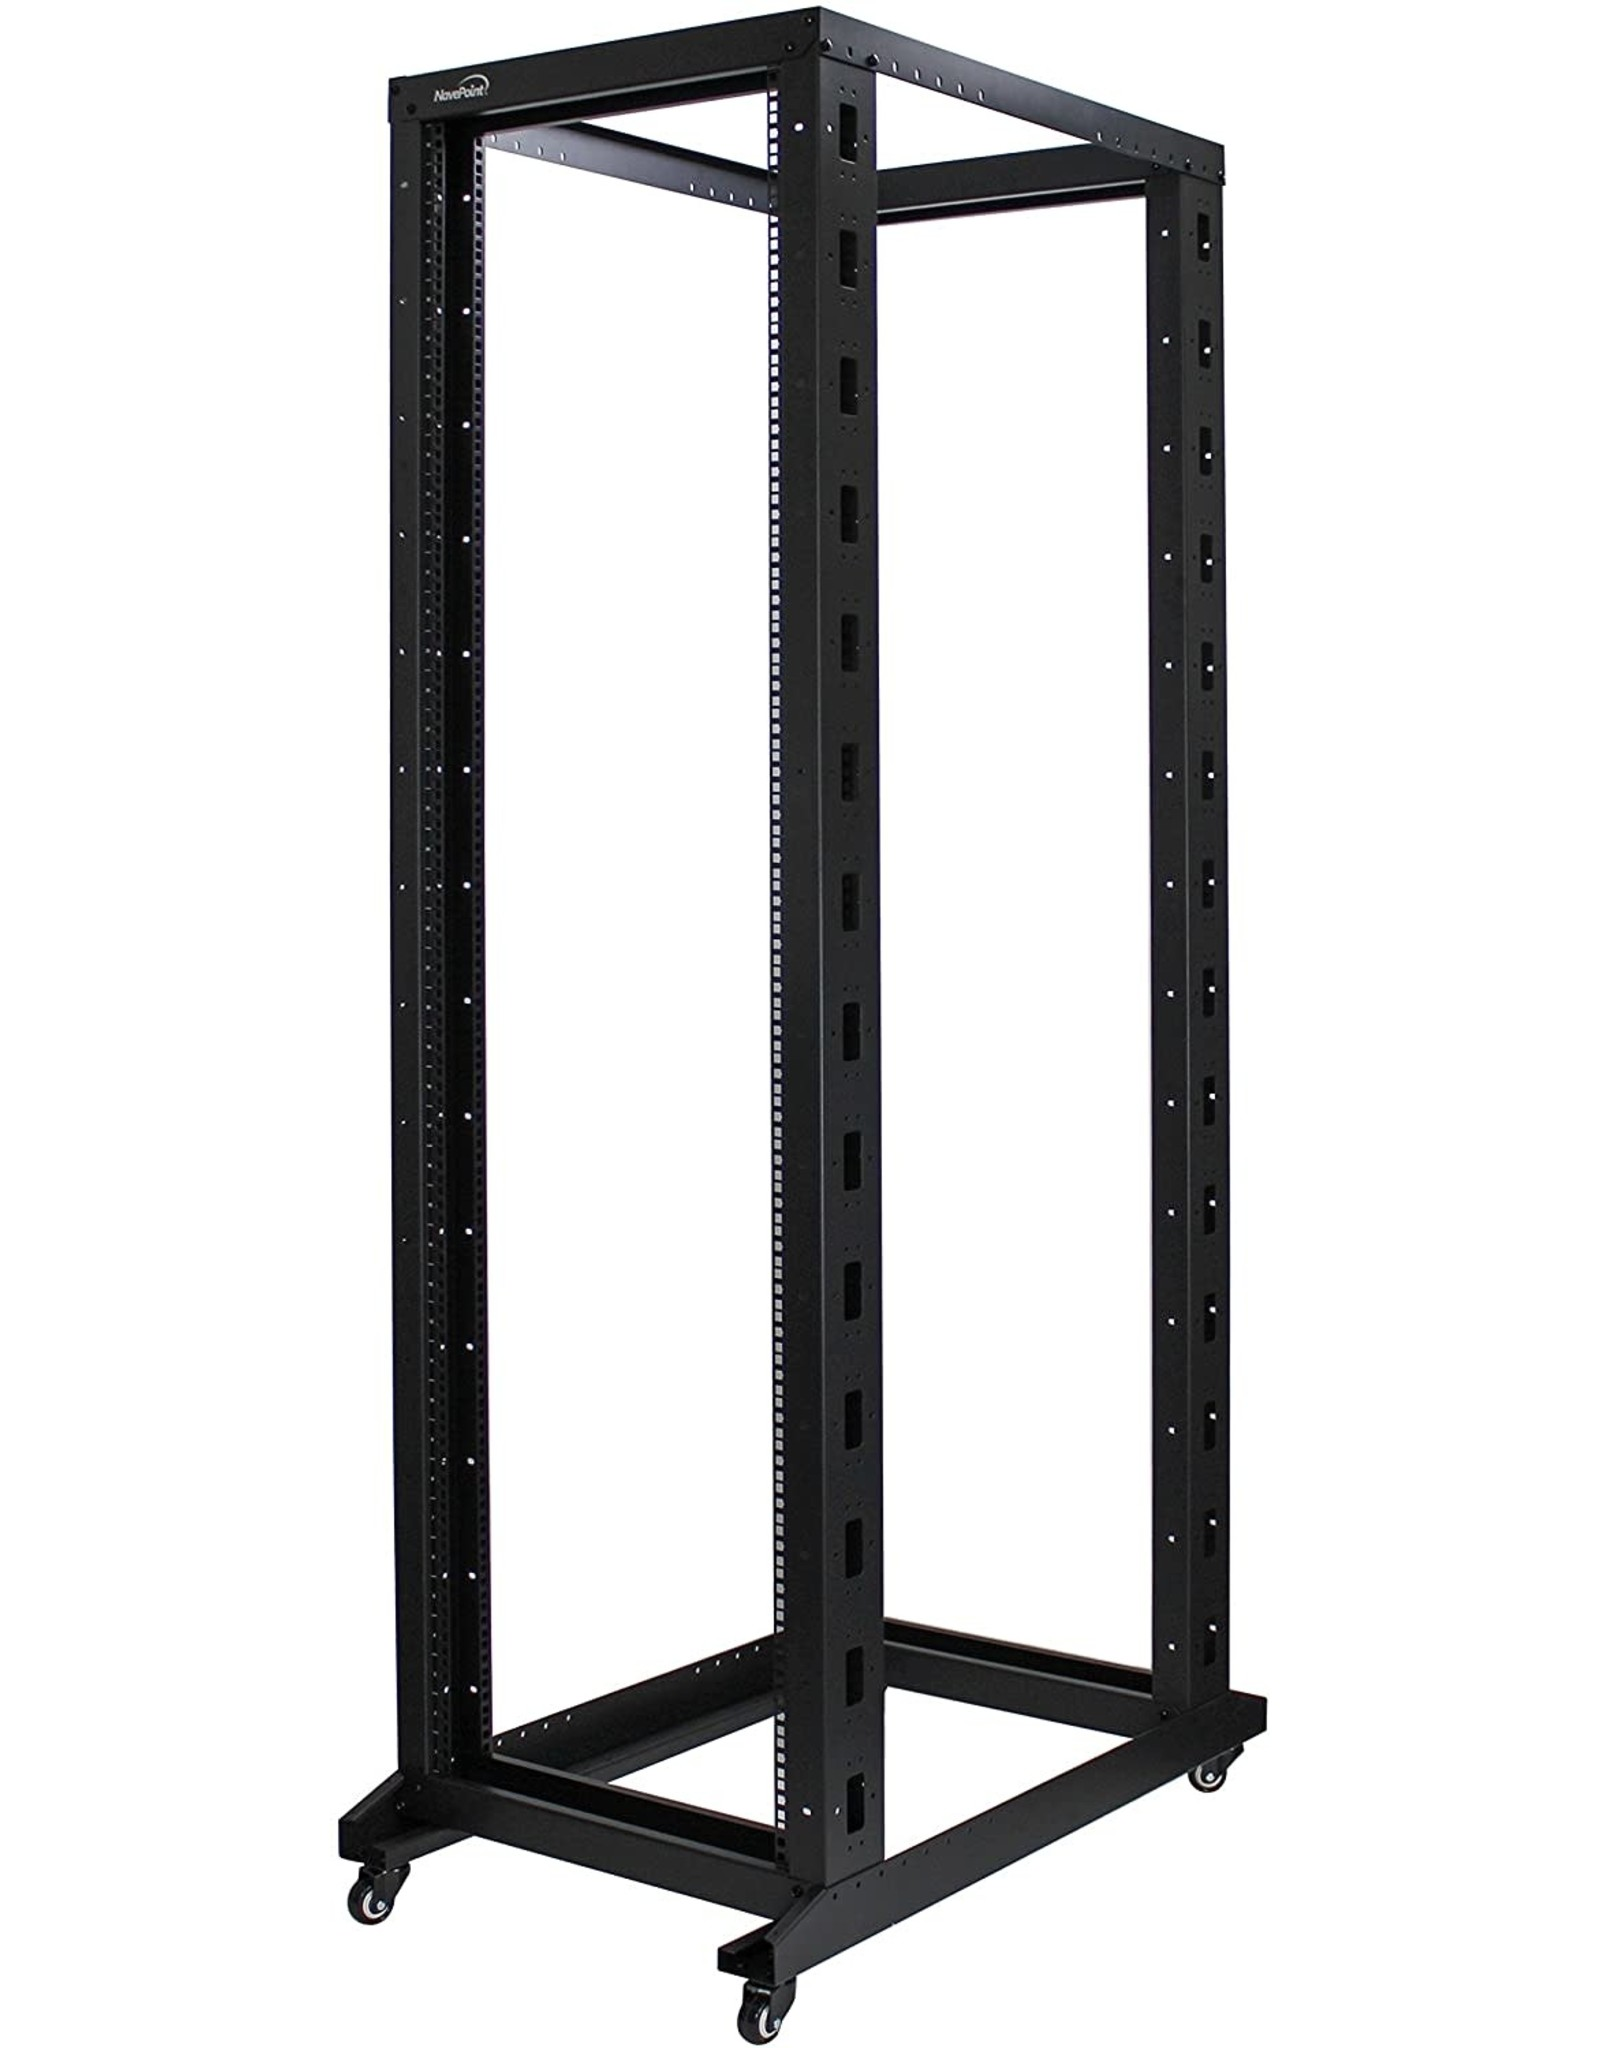 NavePoint NavePoint 42U Professional 4-Post IT Open Frame Server Network Relay Rack 1000mm Casters Black